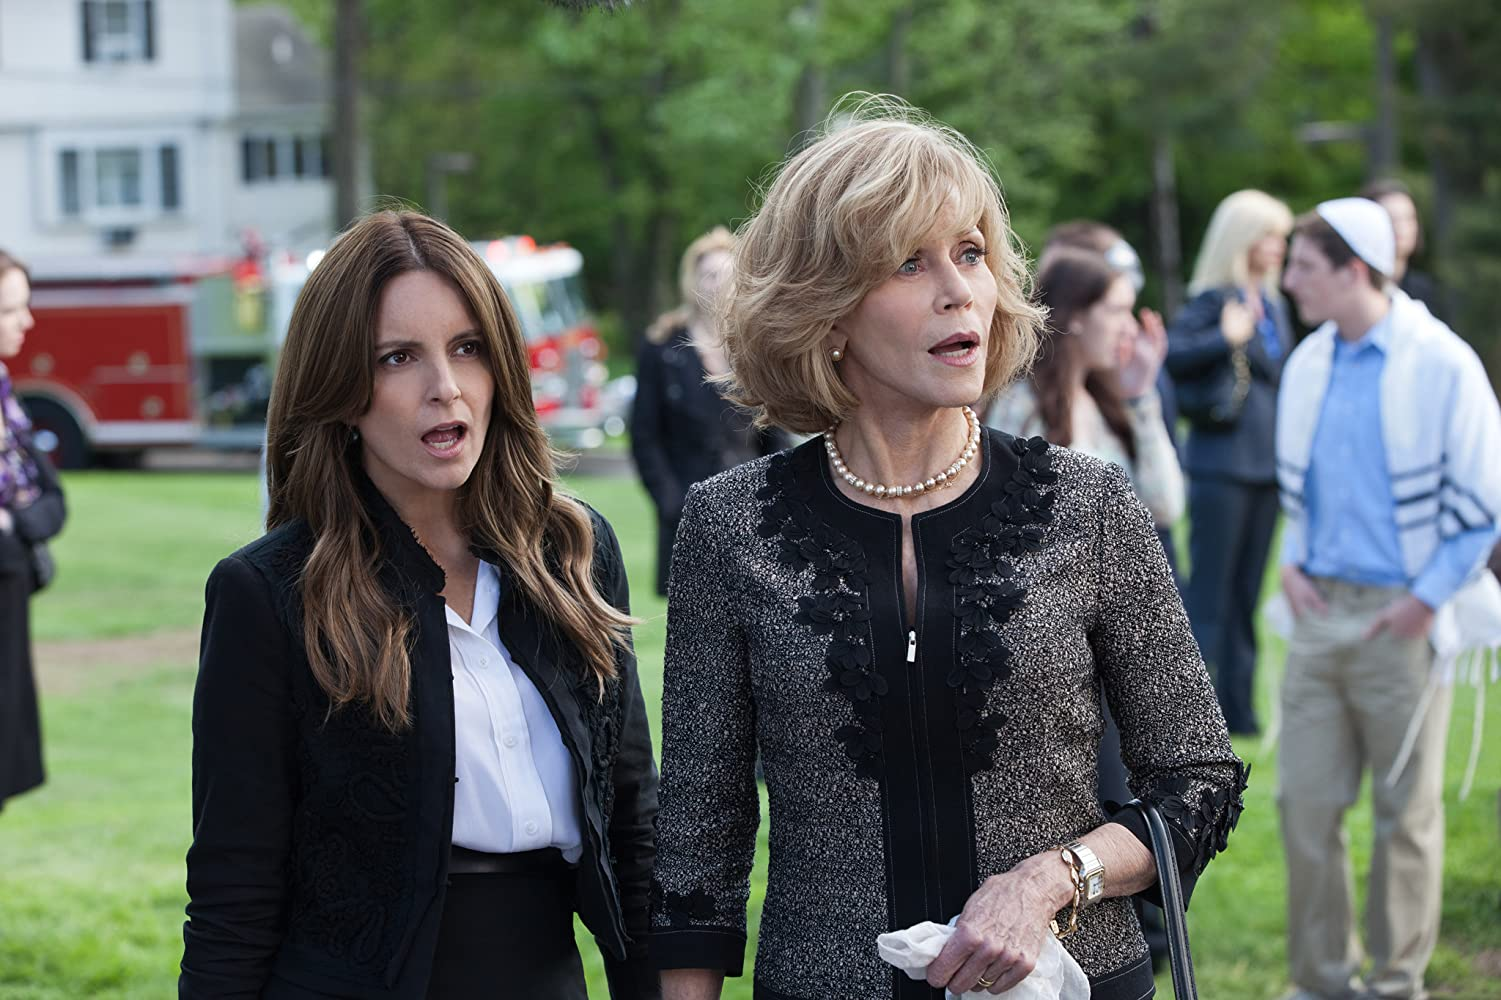 Jane Fonda and Tina Fey in This Is Where I Leave You (2014)